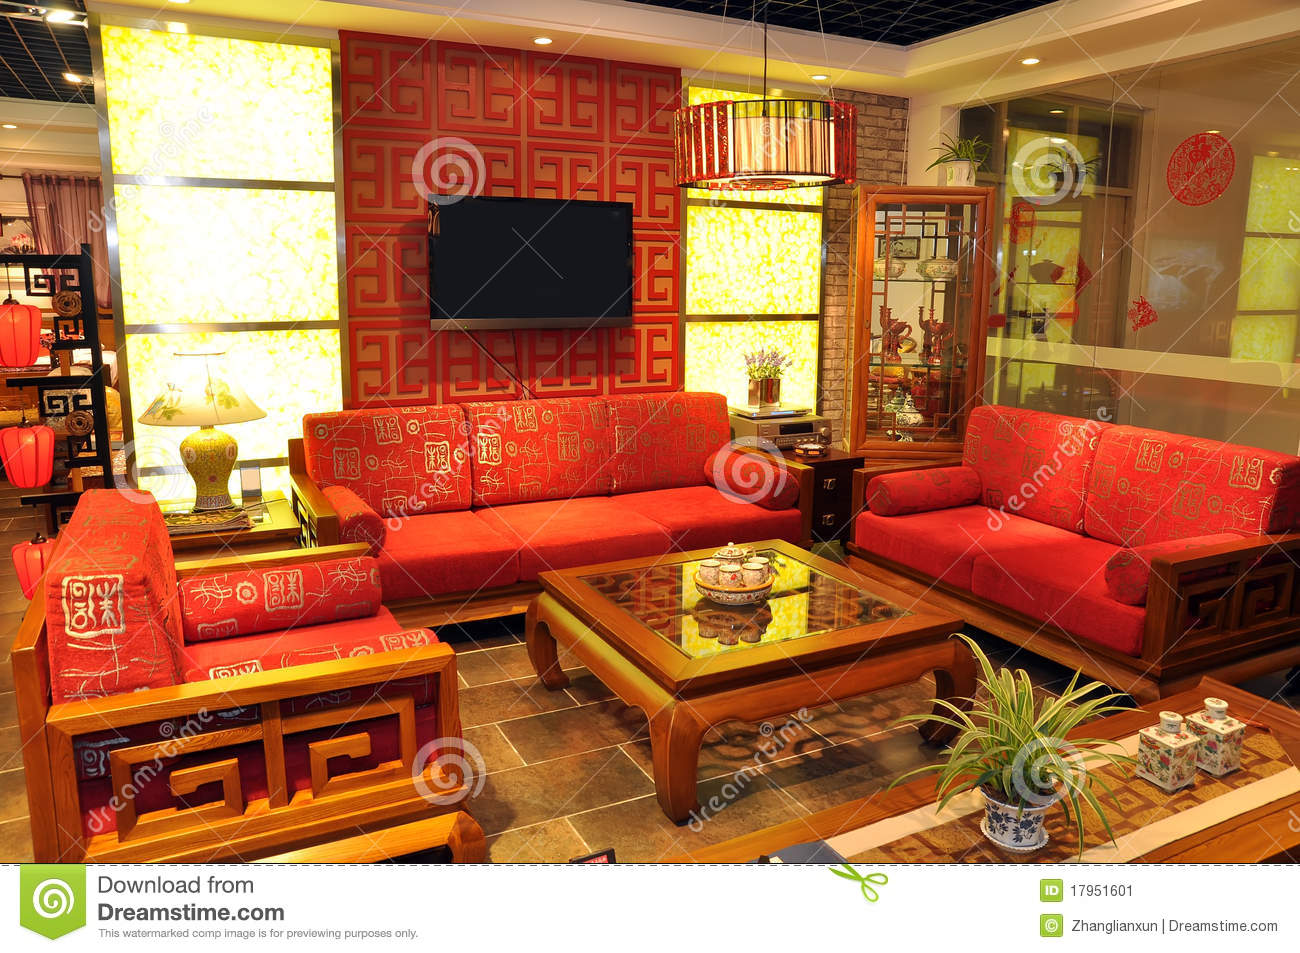 Chinese Traditional Furniture Stock Image - Image: 17951601